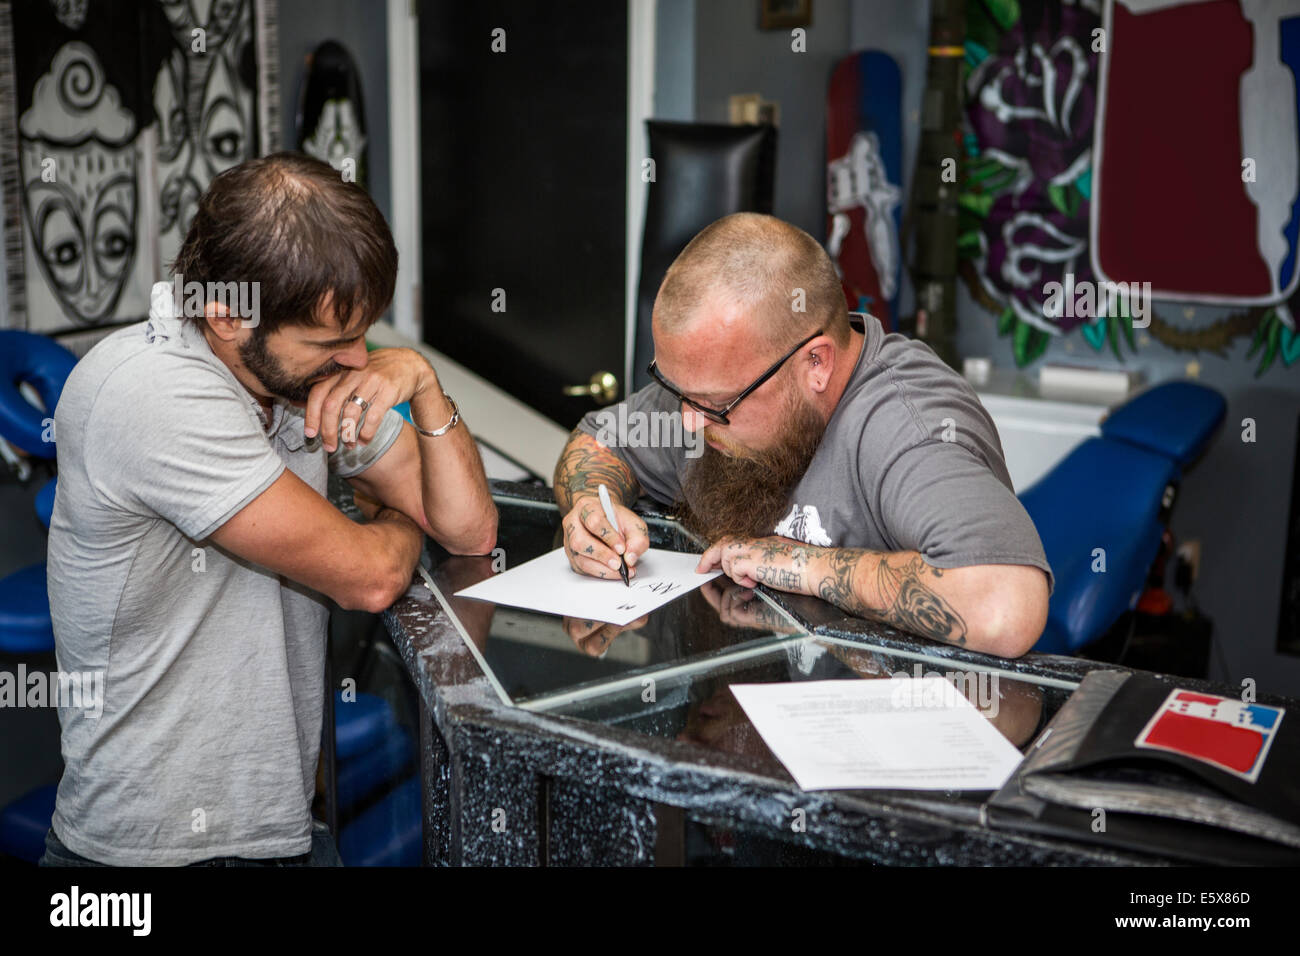 Artist drawing up tattoo ideas with a client - Stock Image